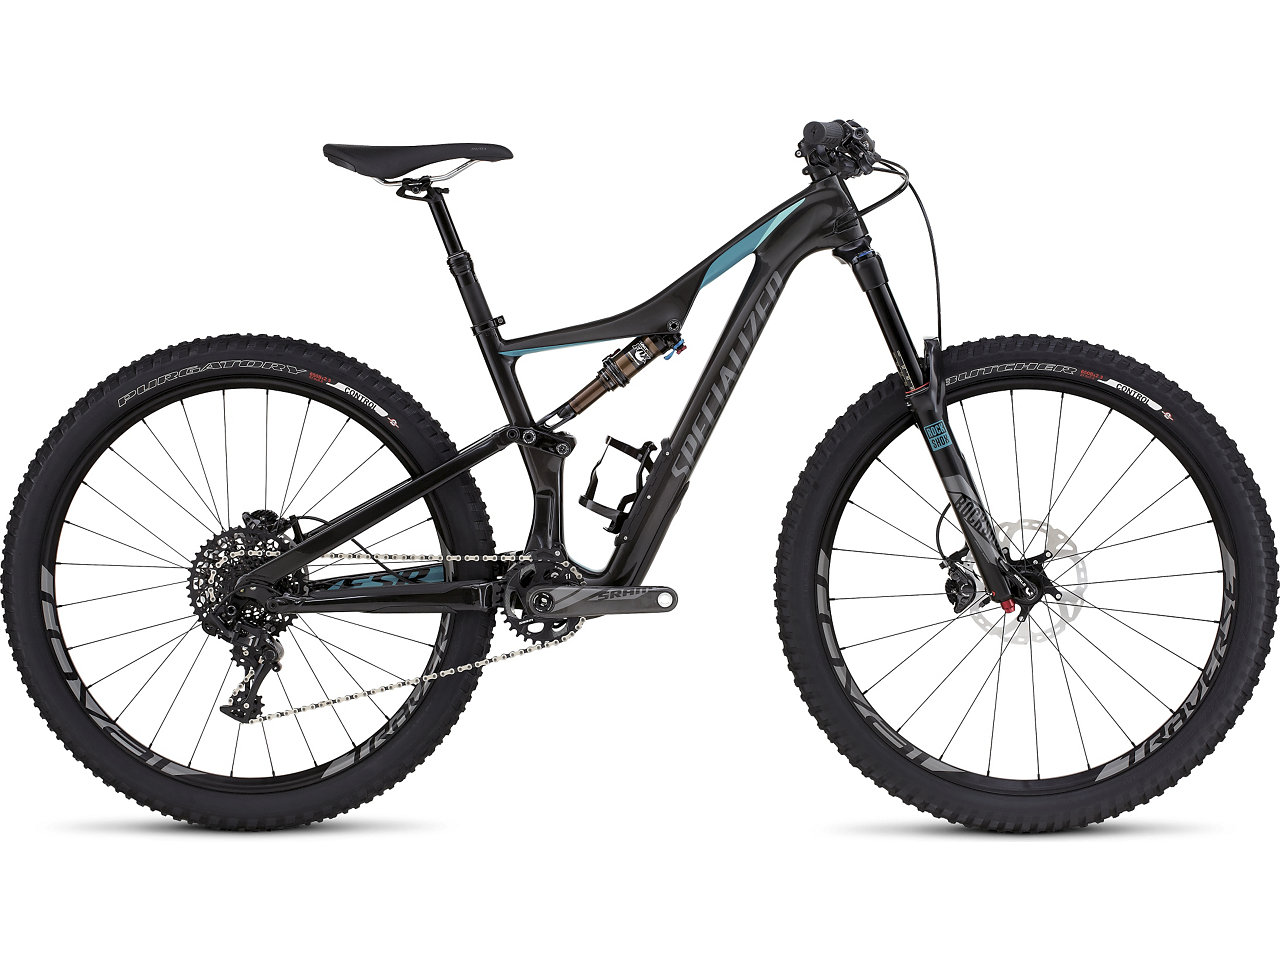 Best Specialized Mountain Bike Reviews: Top 5 Picks in the